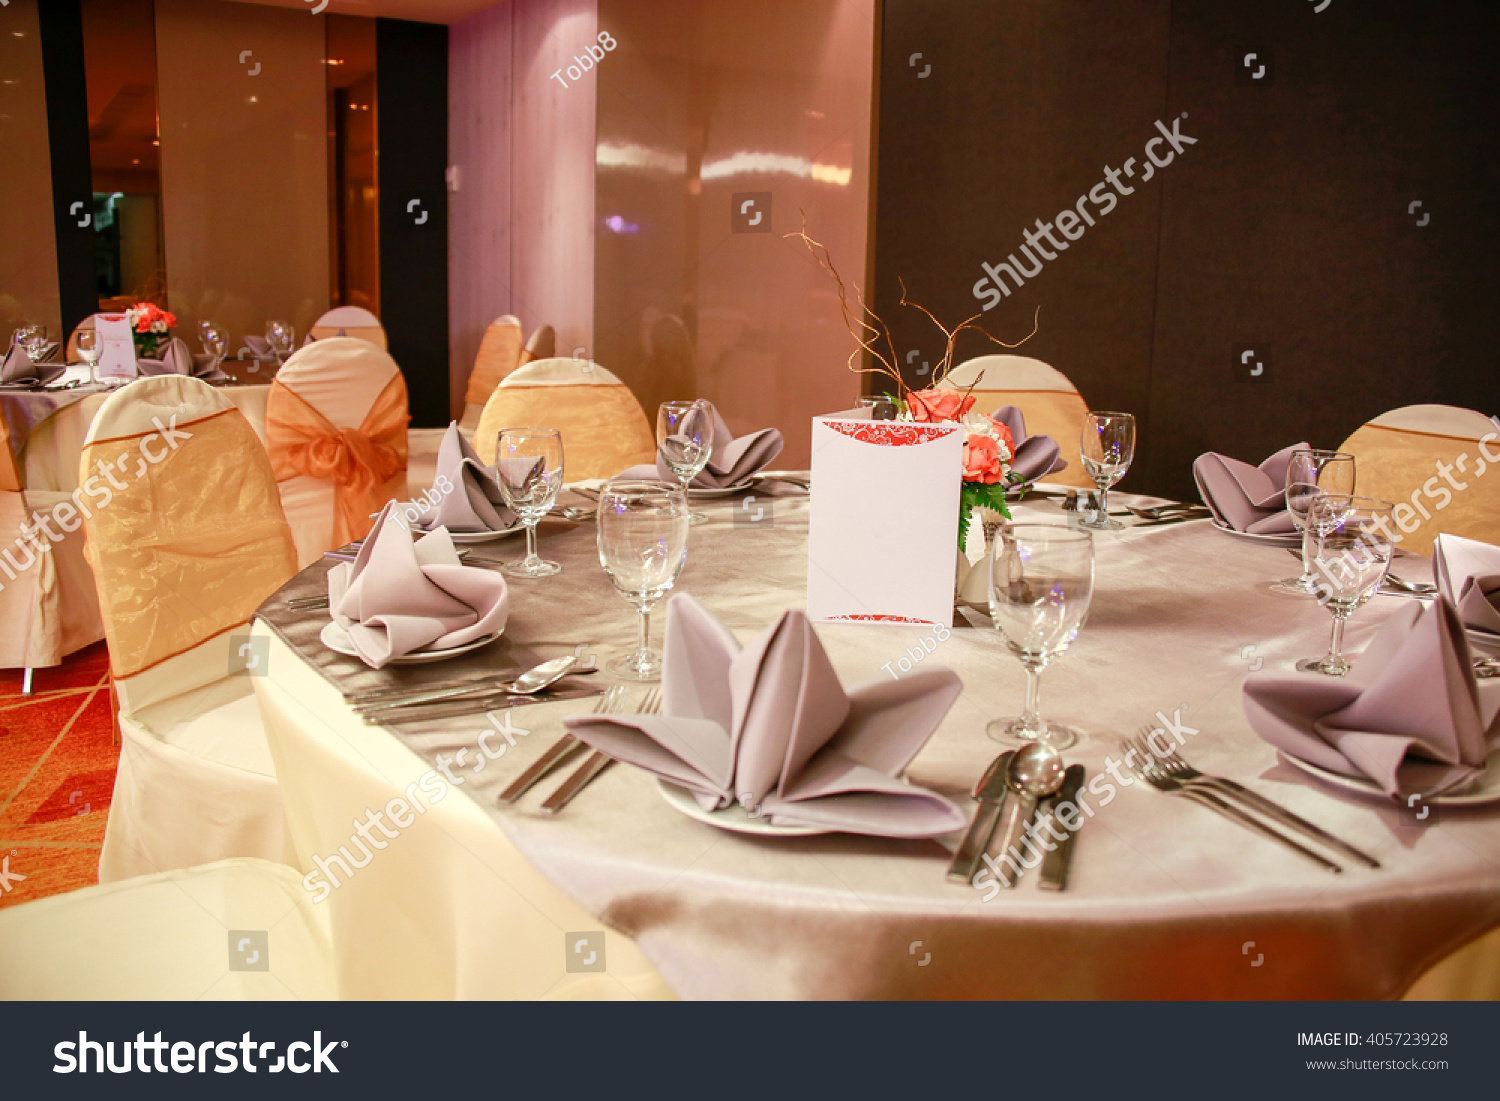 why dinner wait banner the but table